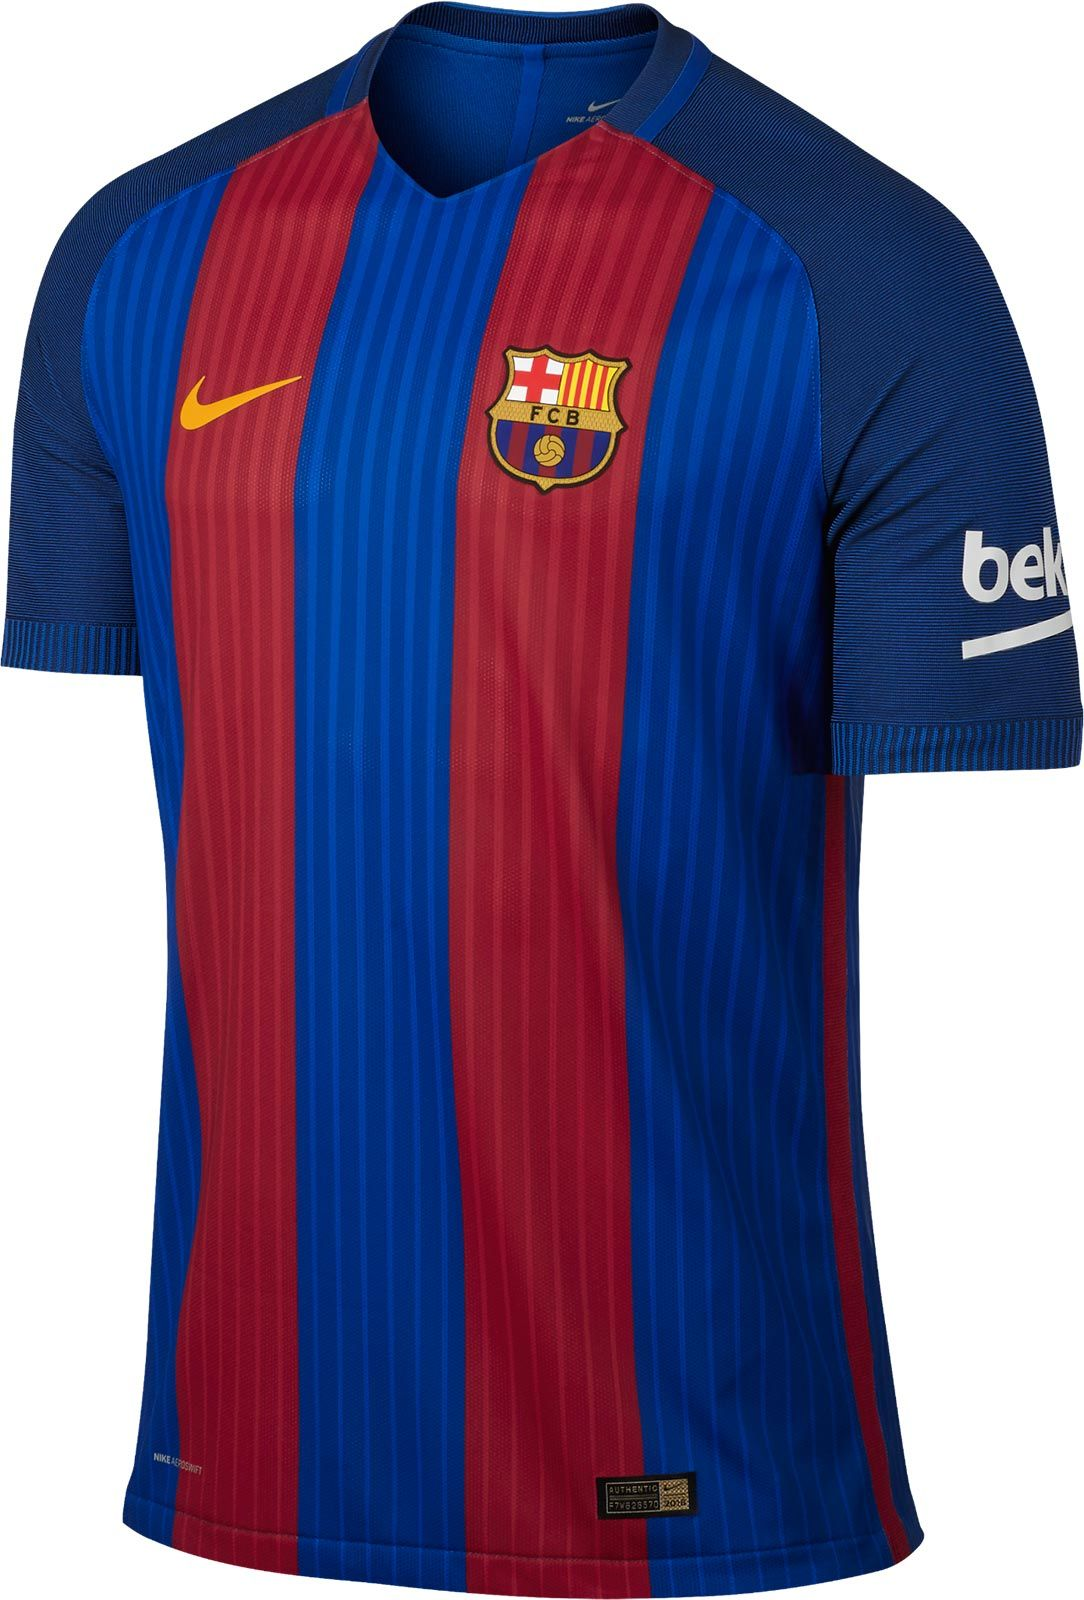 The Barcelona 16-17 kit is blue with red stripes, ditching the hoops look